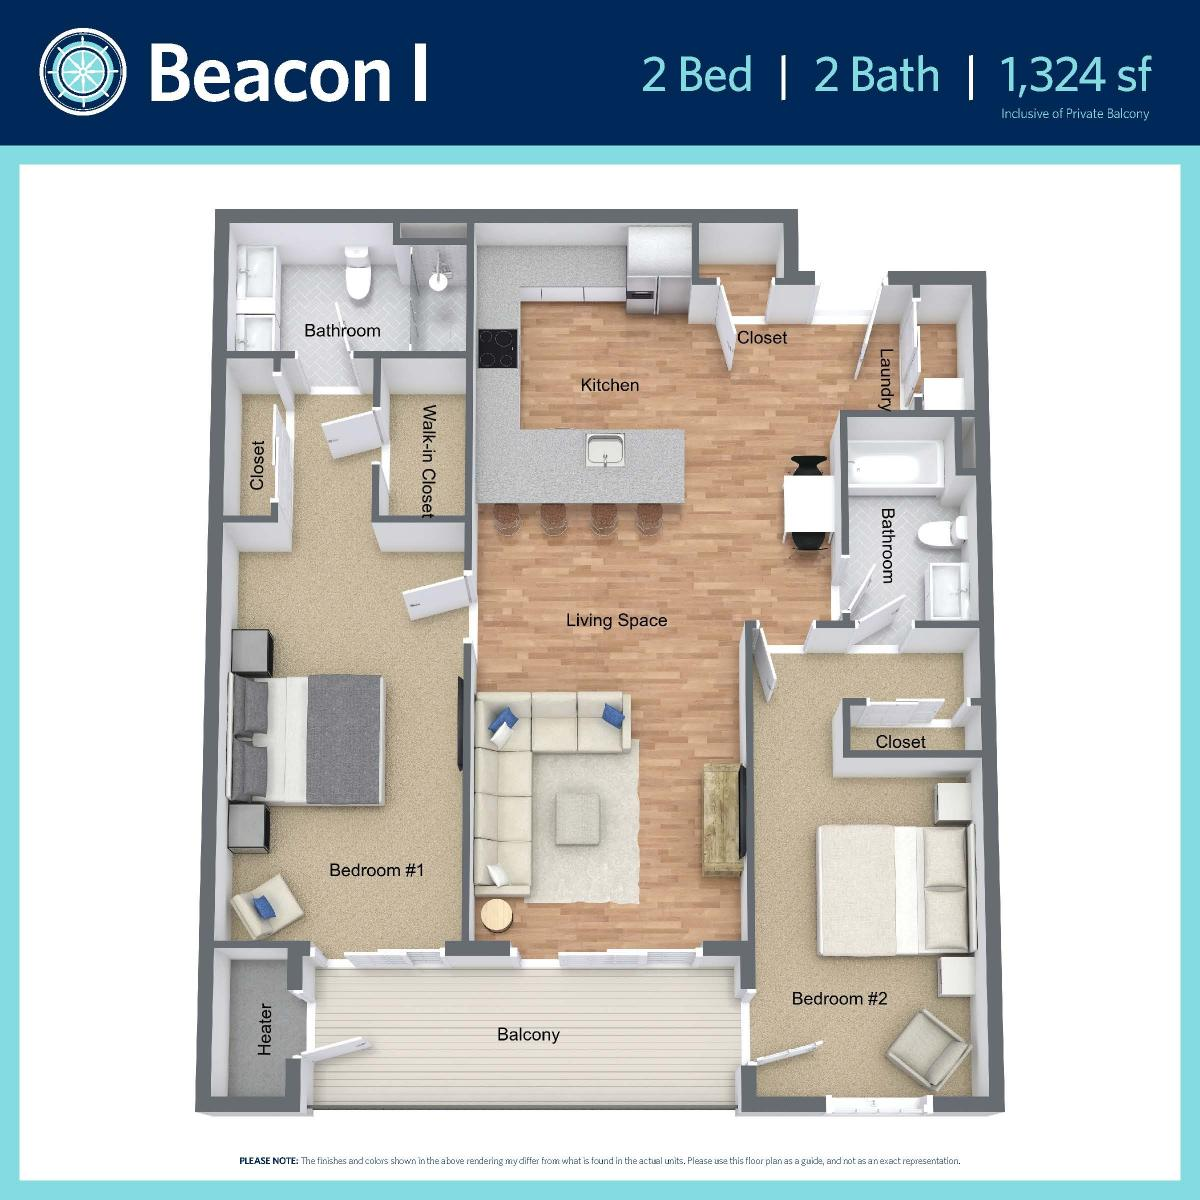 Beacon I -2 bed, 2 bath -1,324 sq ft